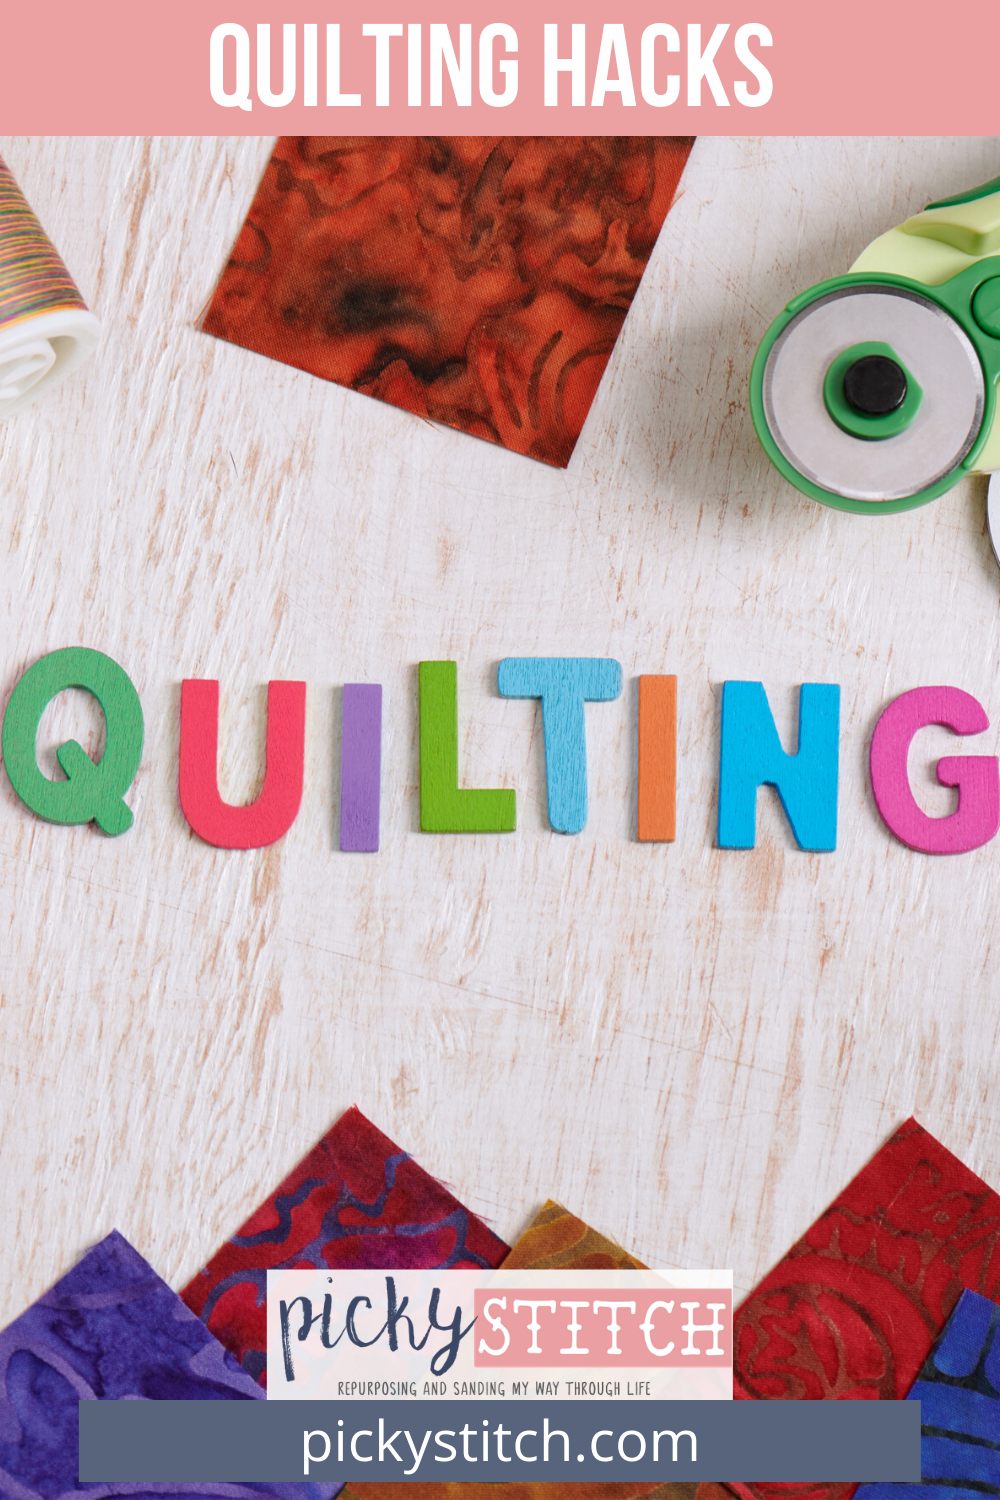 Love to quilt? Want some awesome hacks that will help streamline the quilting process? Learn from the pros the best quilting hacks that will make you even better! #quilting hacks #quiltingtips